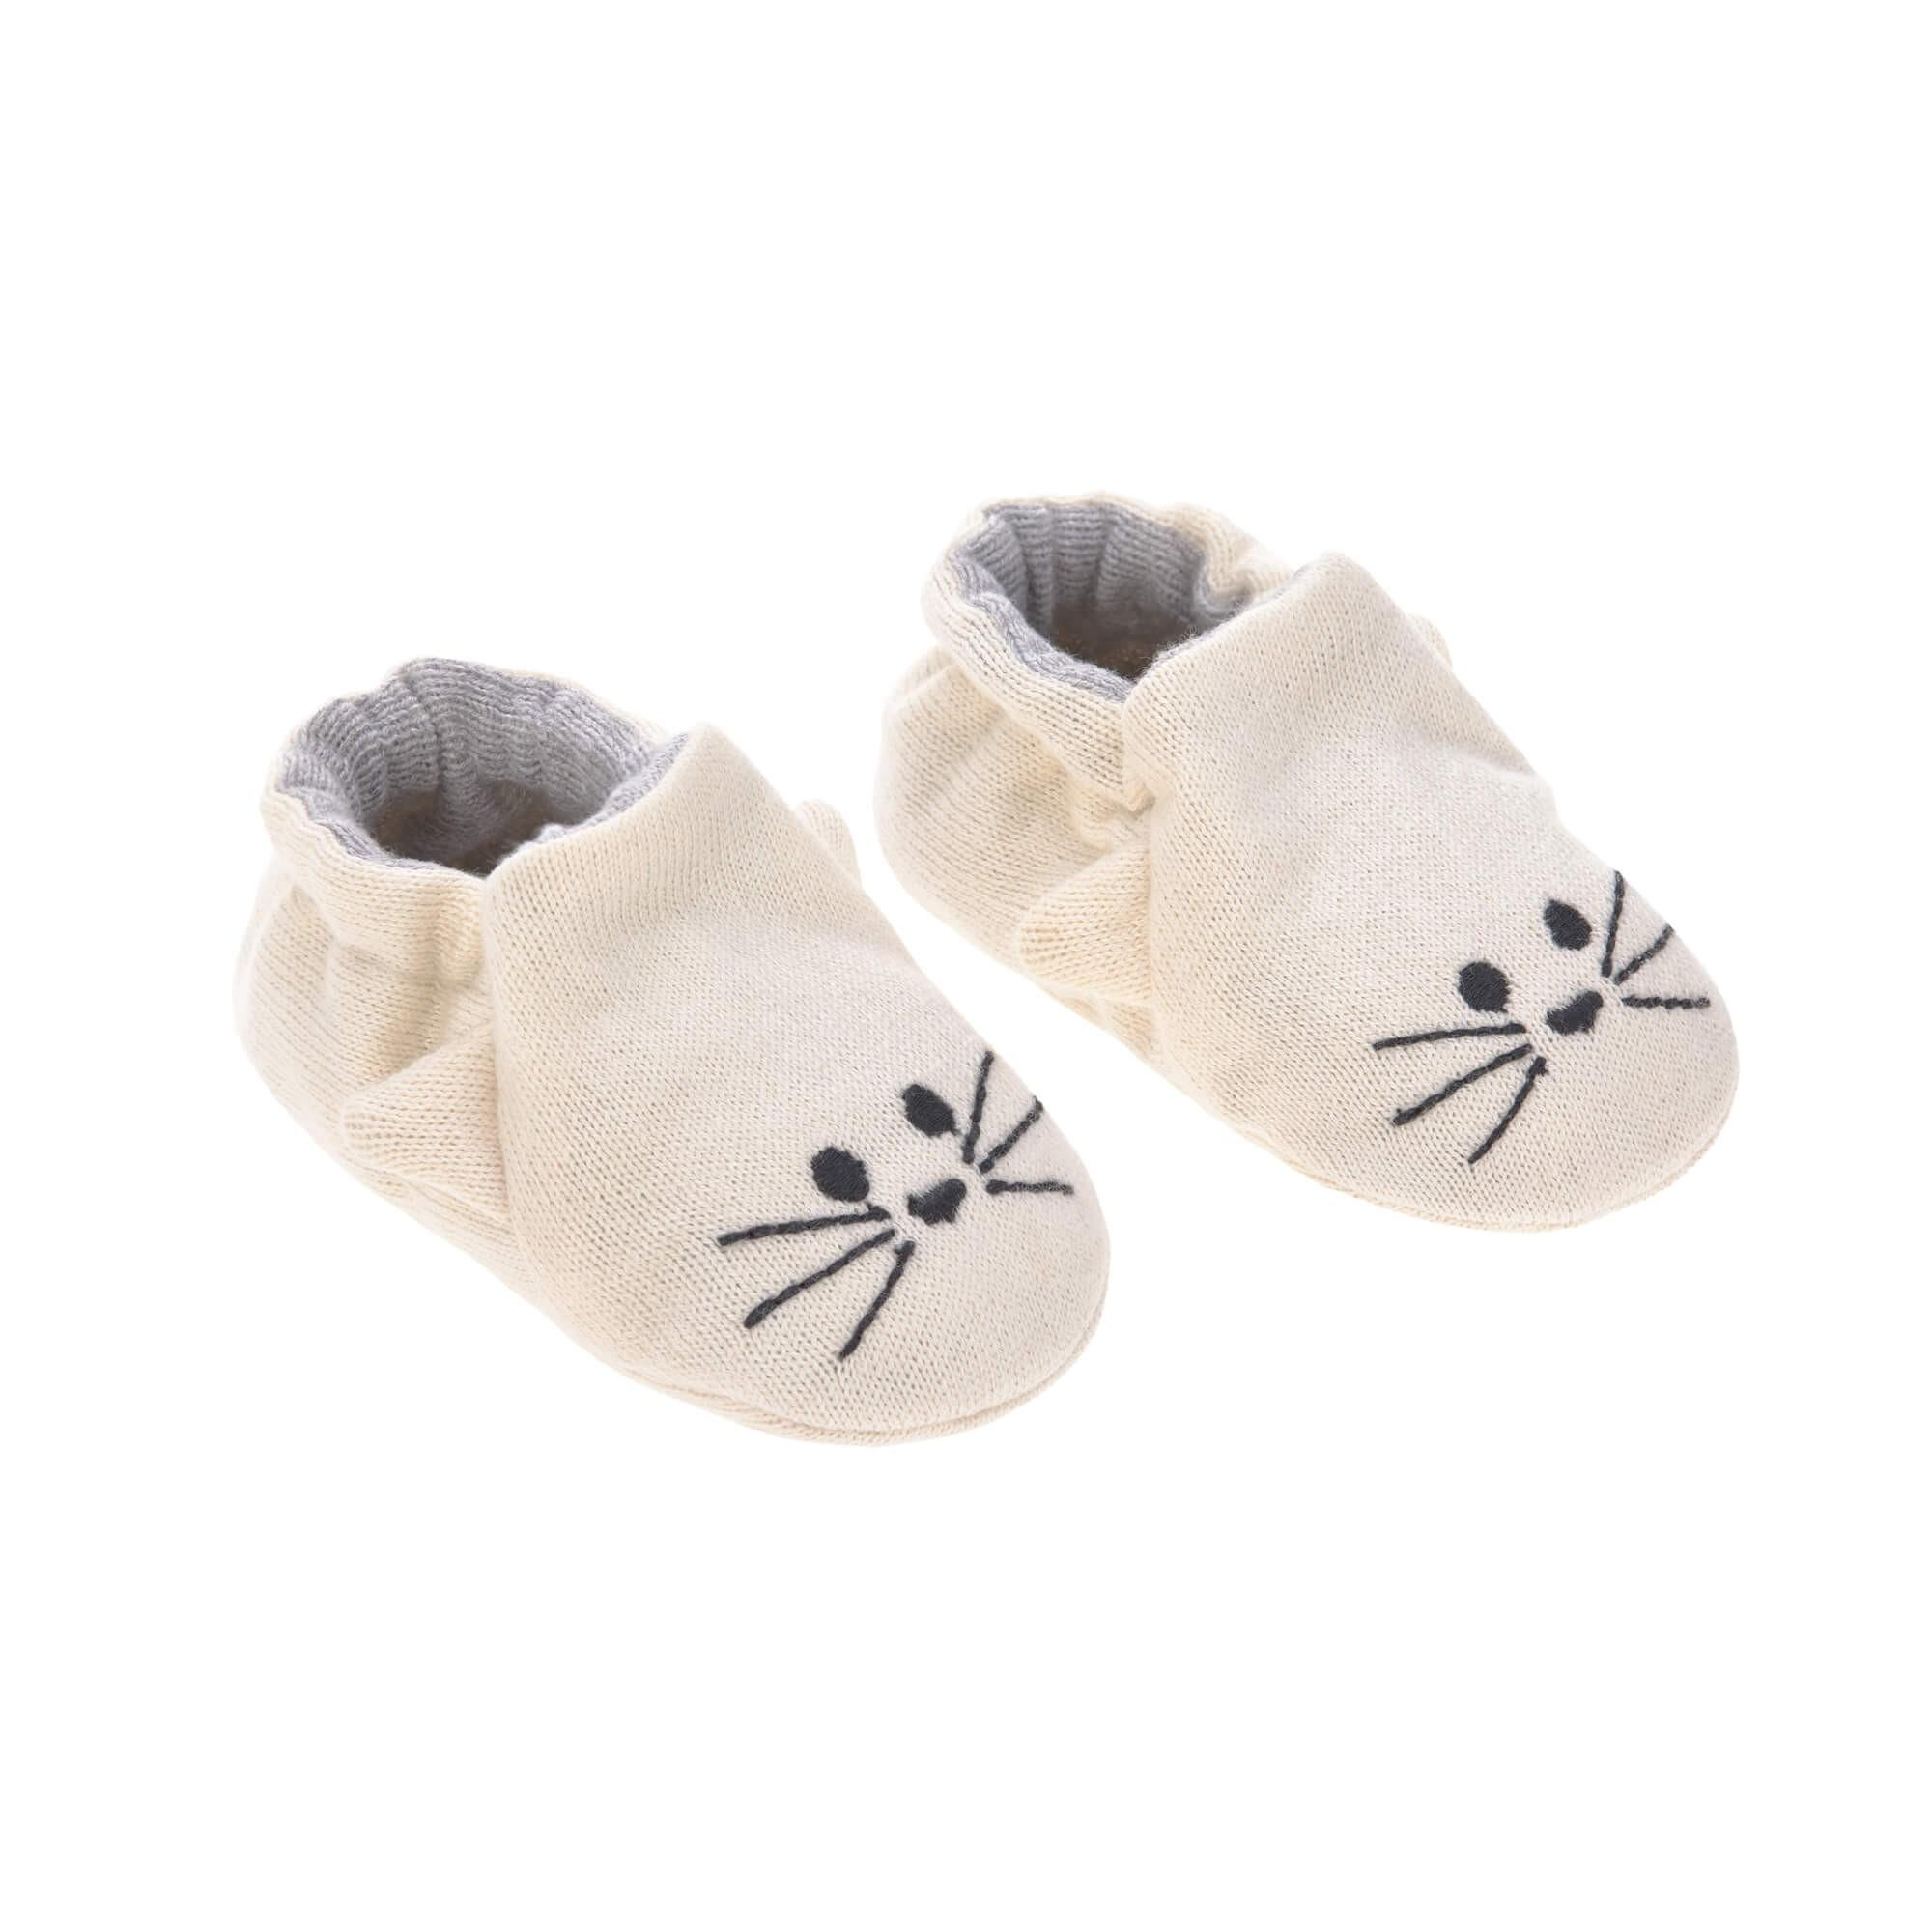 Lassig - Baby Shoes Gots Little Chums Cat, One Size